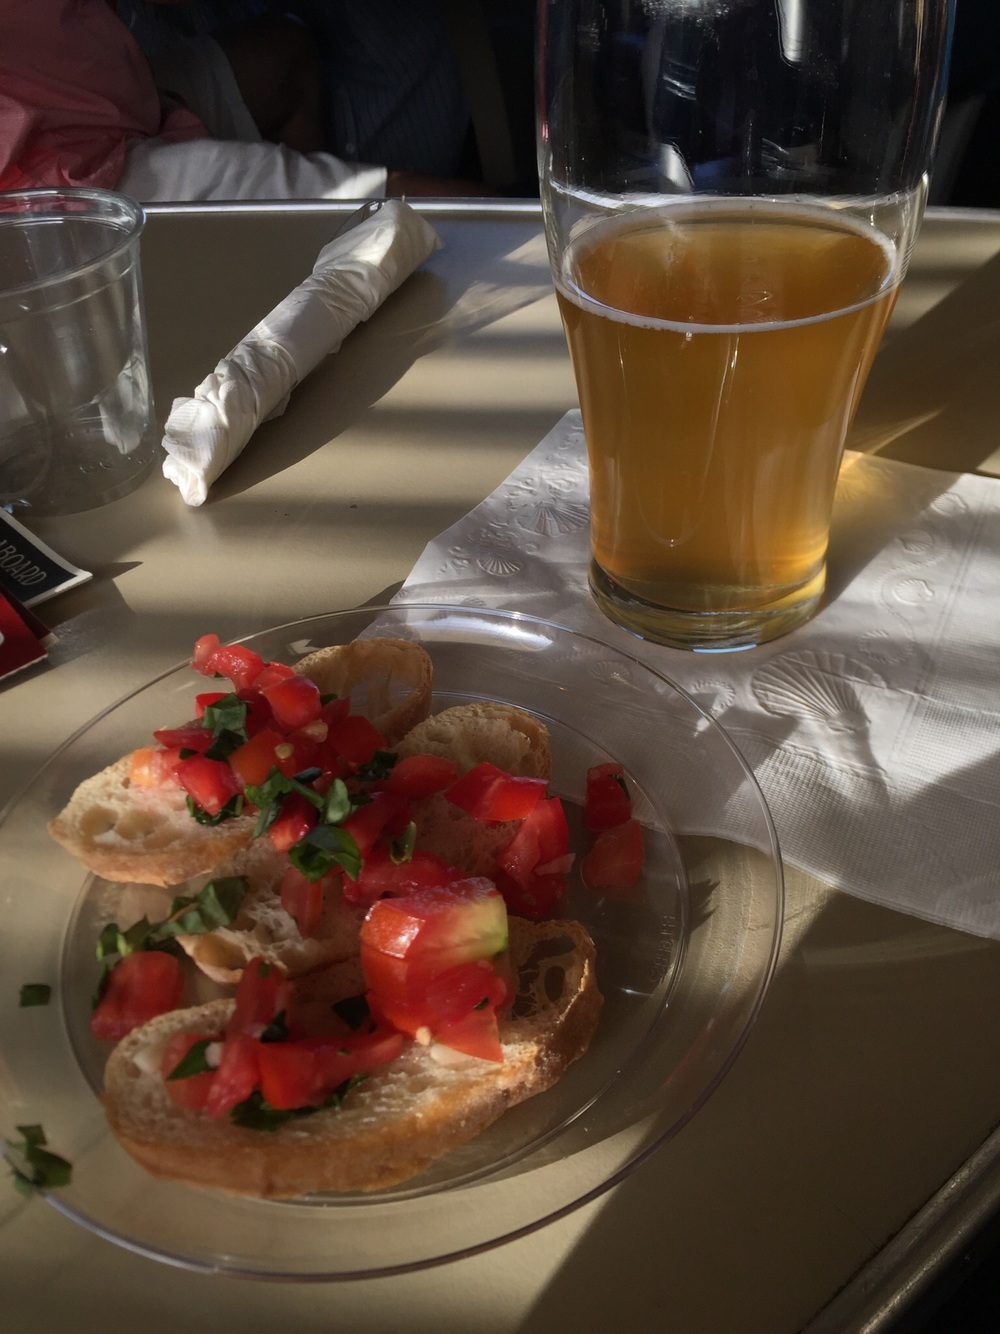 Hefeweizen and Bruschetta